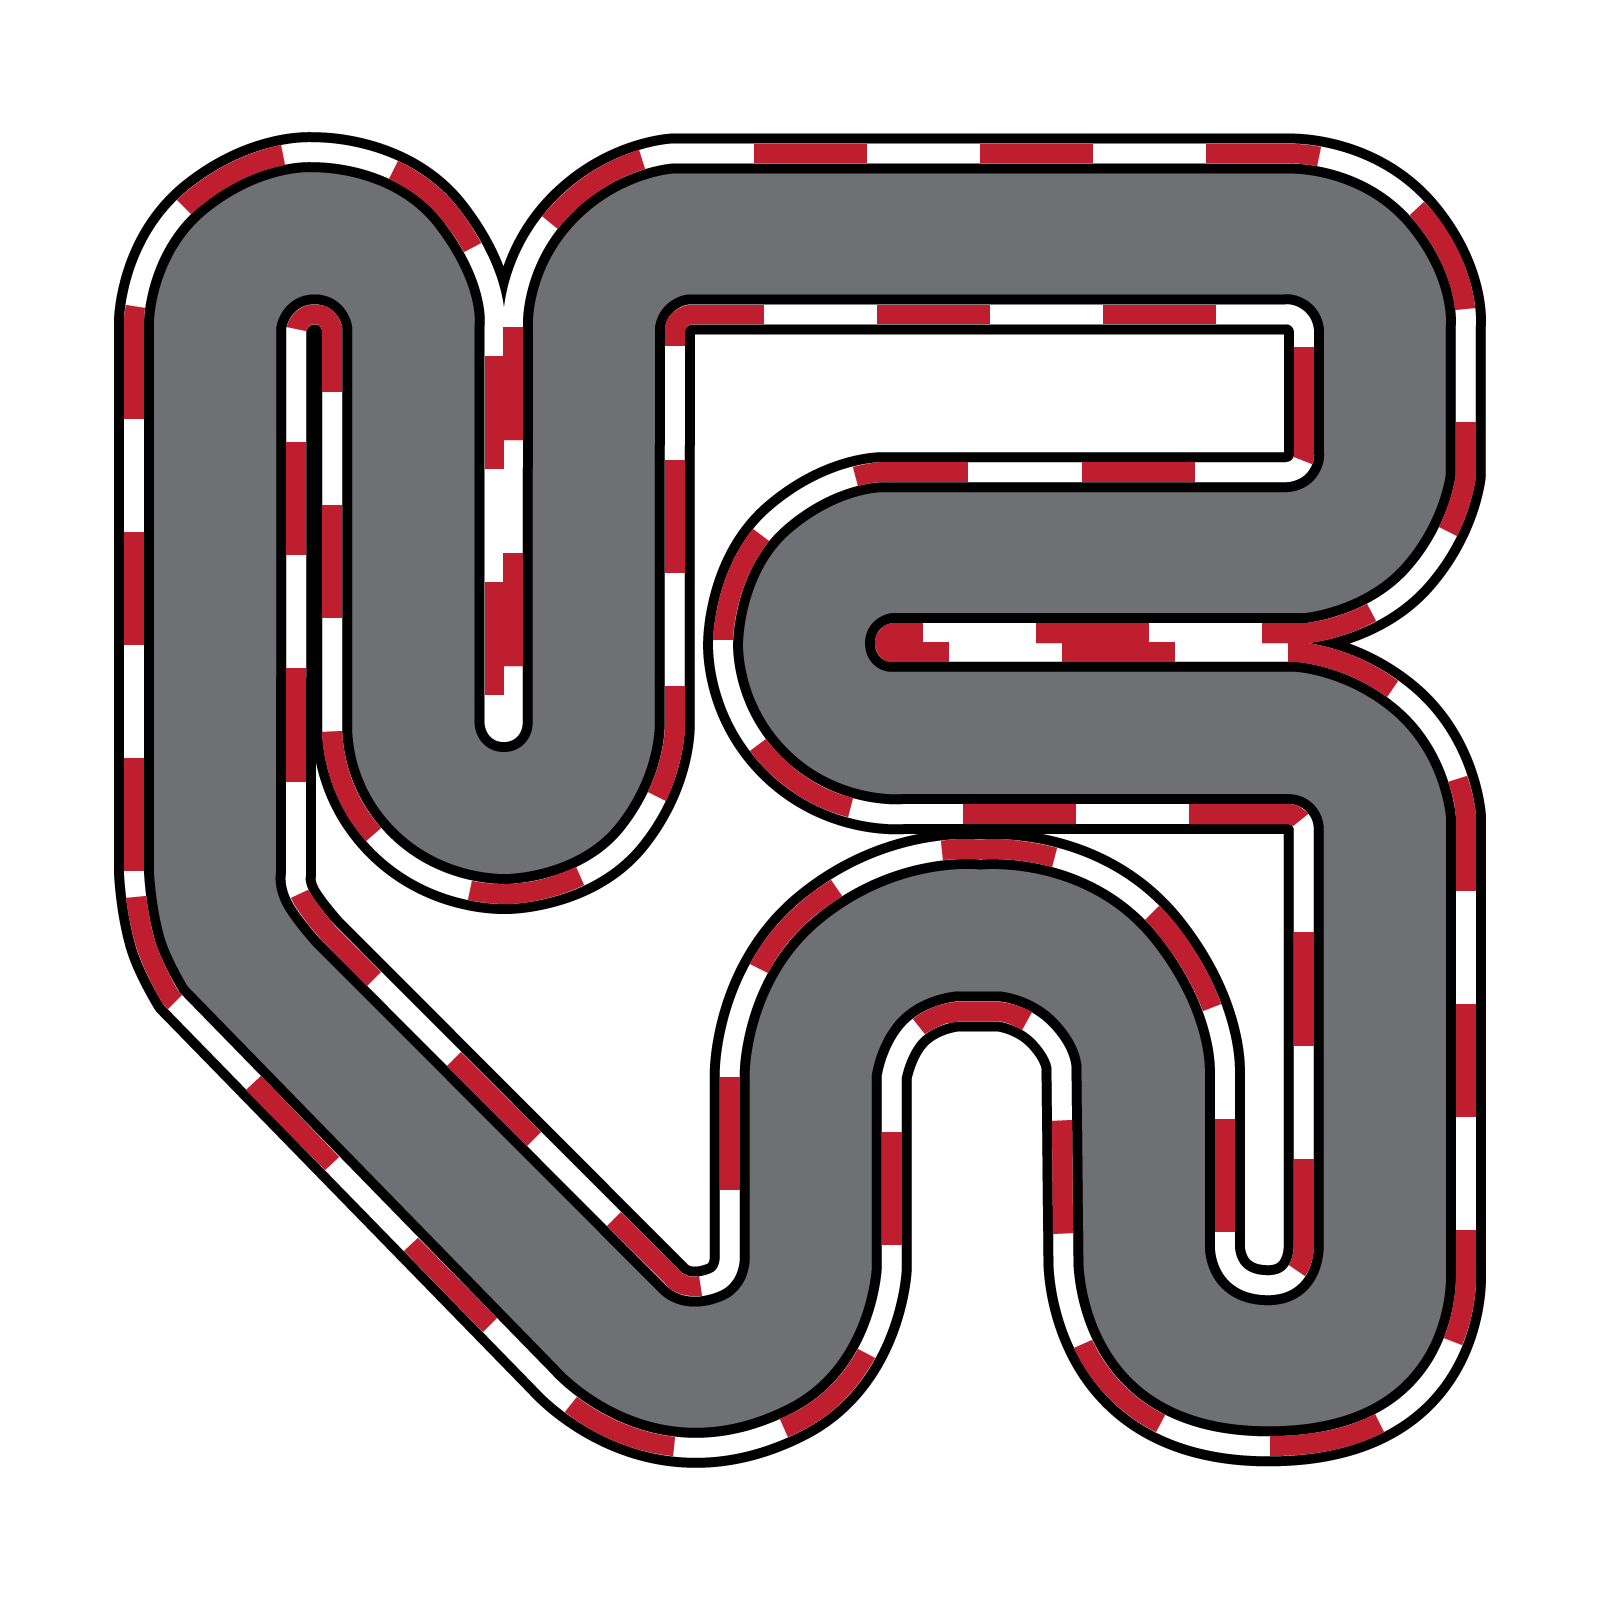 Kart race circuit clip. Track clipart racing track